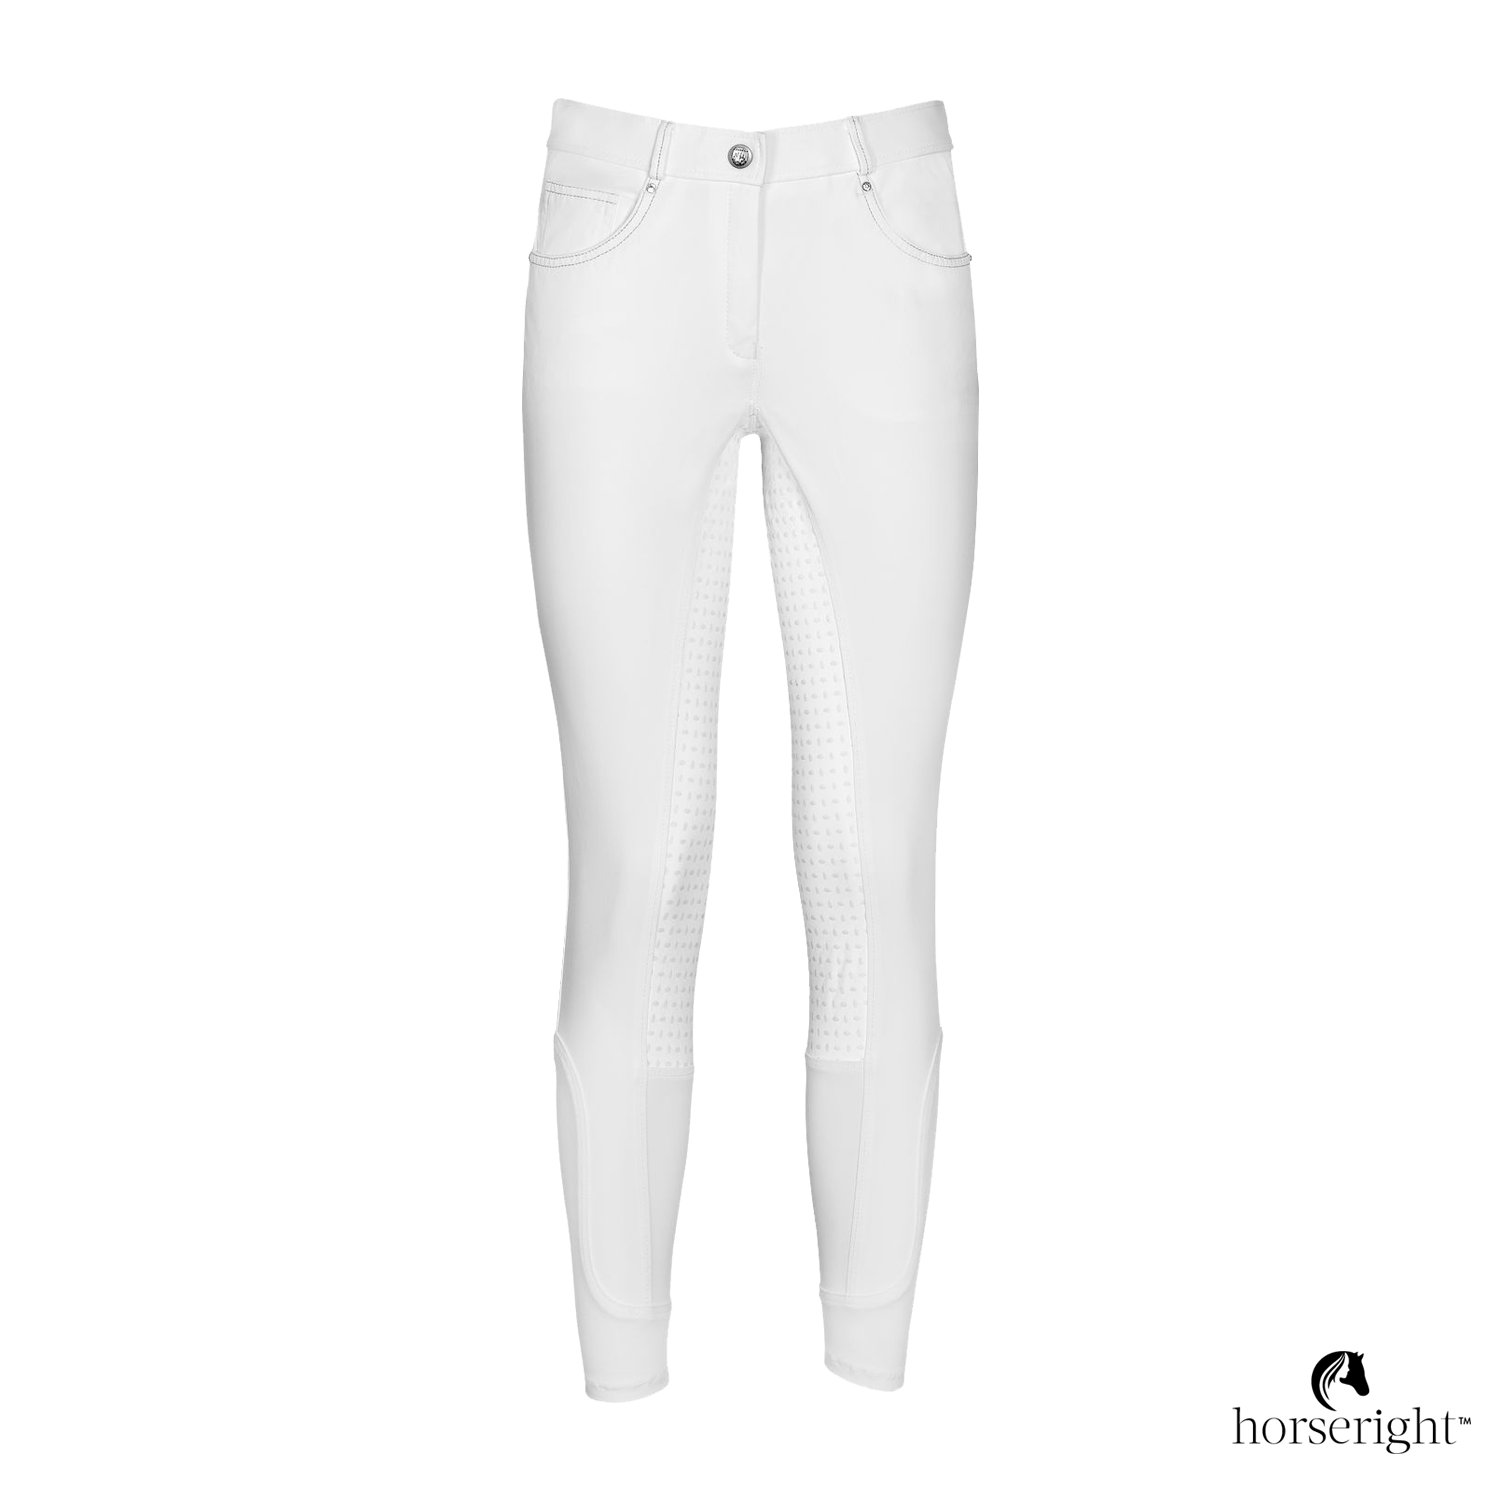 Clearance Cheval De Luxe Breeches Corinne Grip